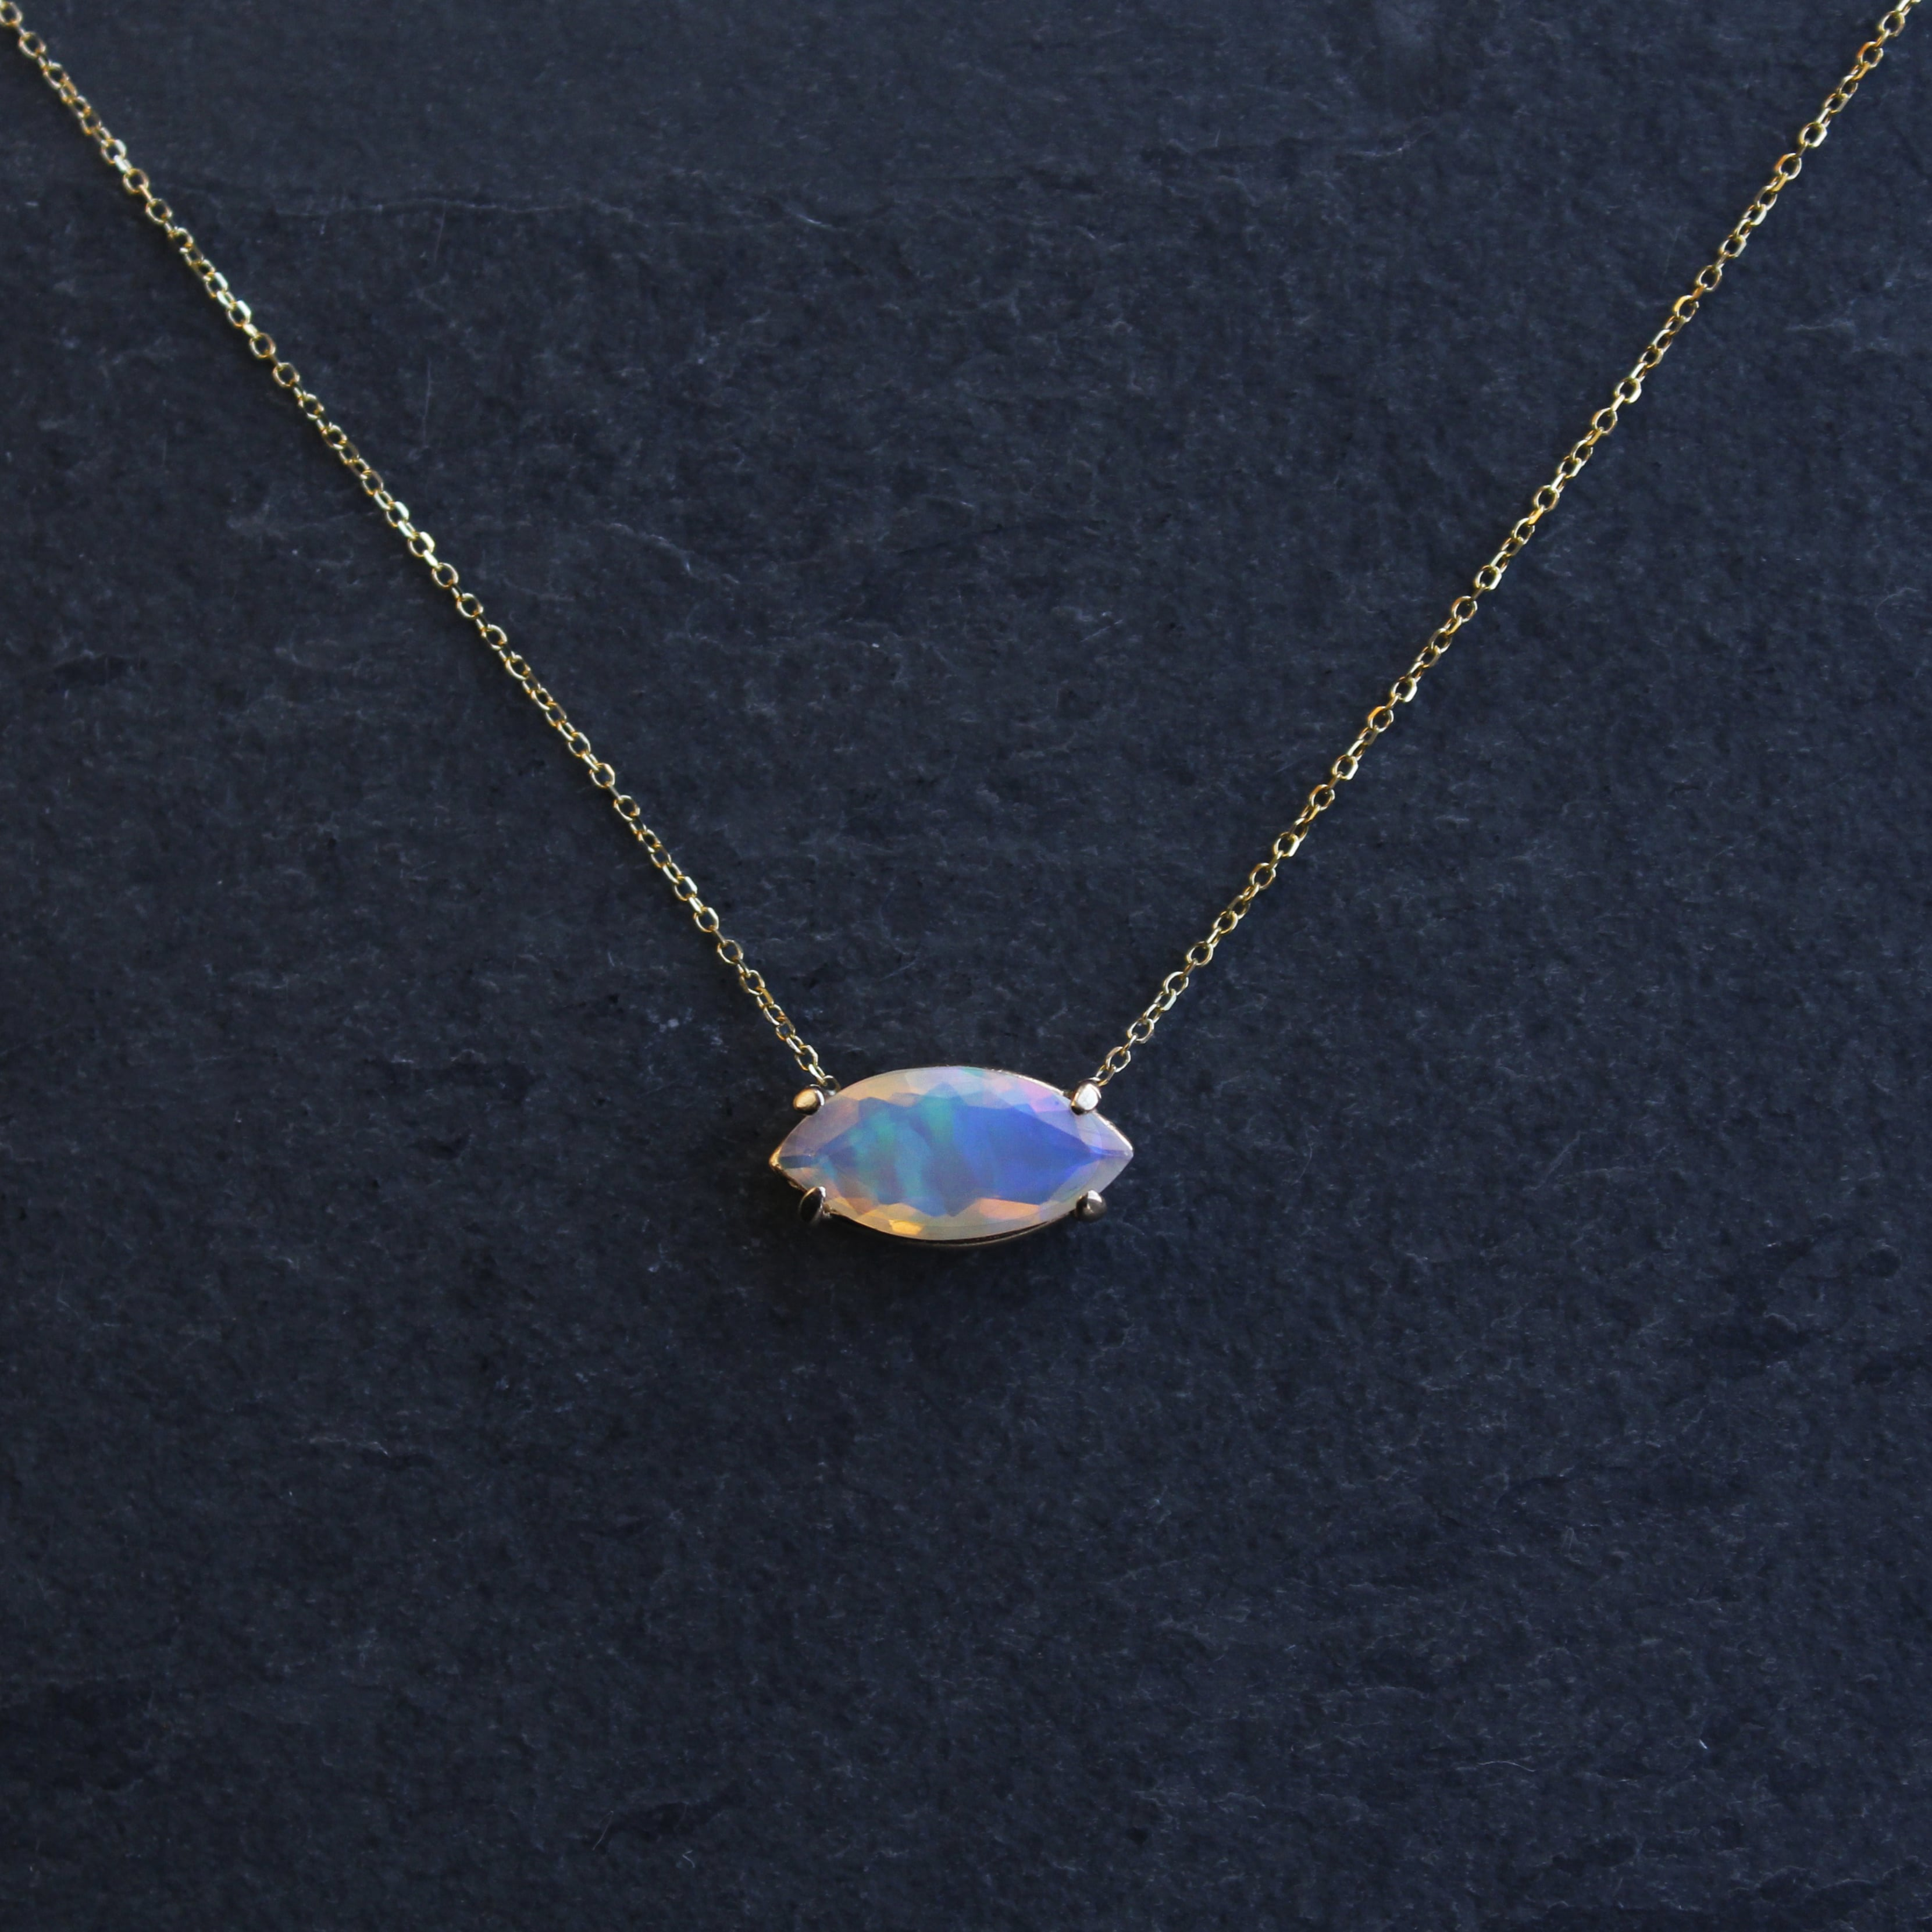 Solitaire Marquise Opal Necklace